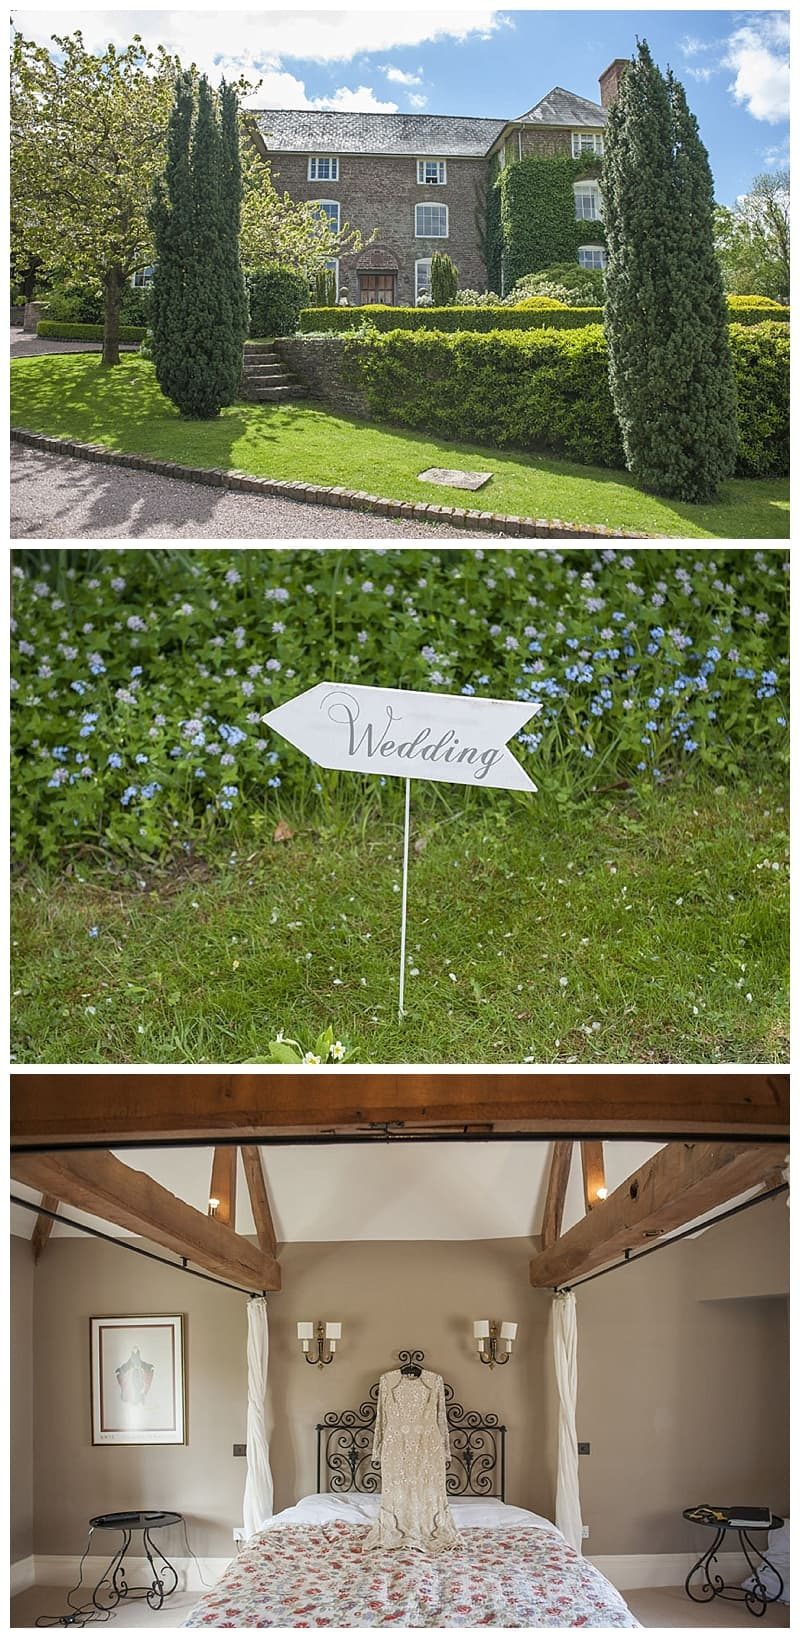 Dewsall Court Wedding, Fran & Alex, Herefordshire Wedding - Benjamin Wetherall Photography ©0002